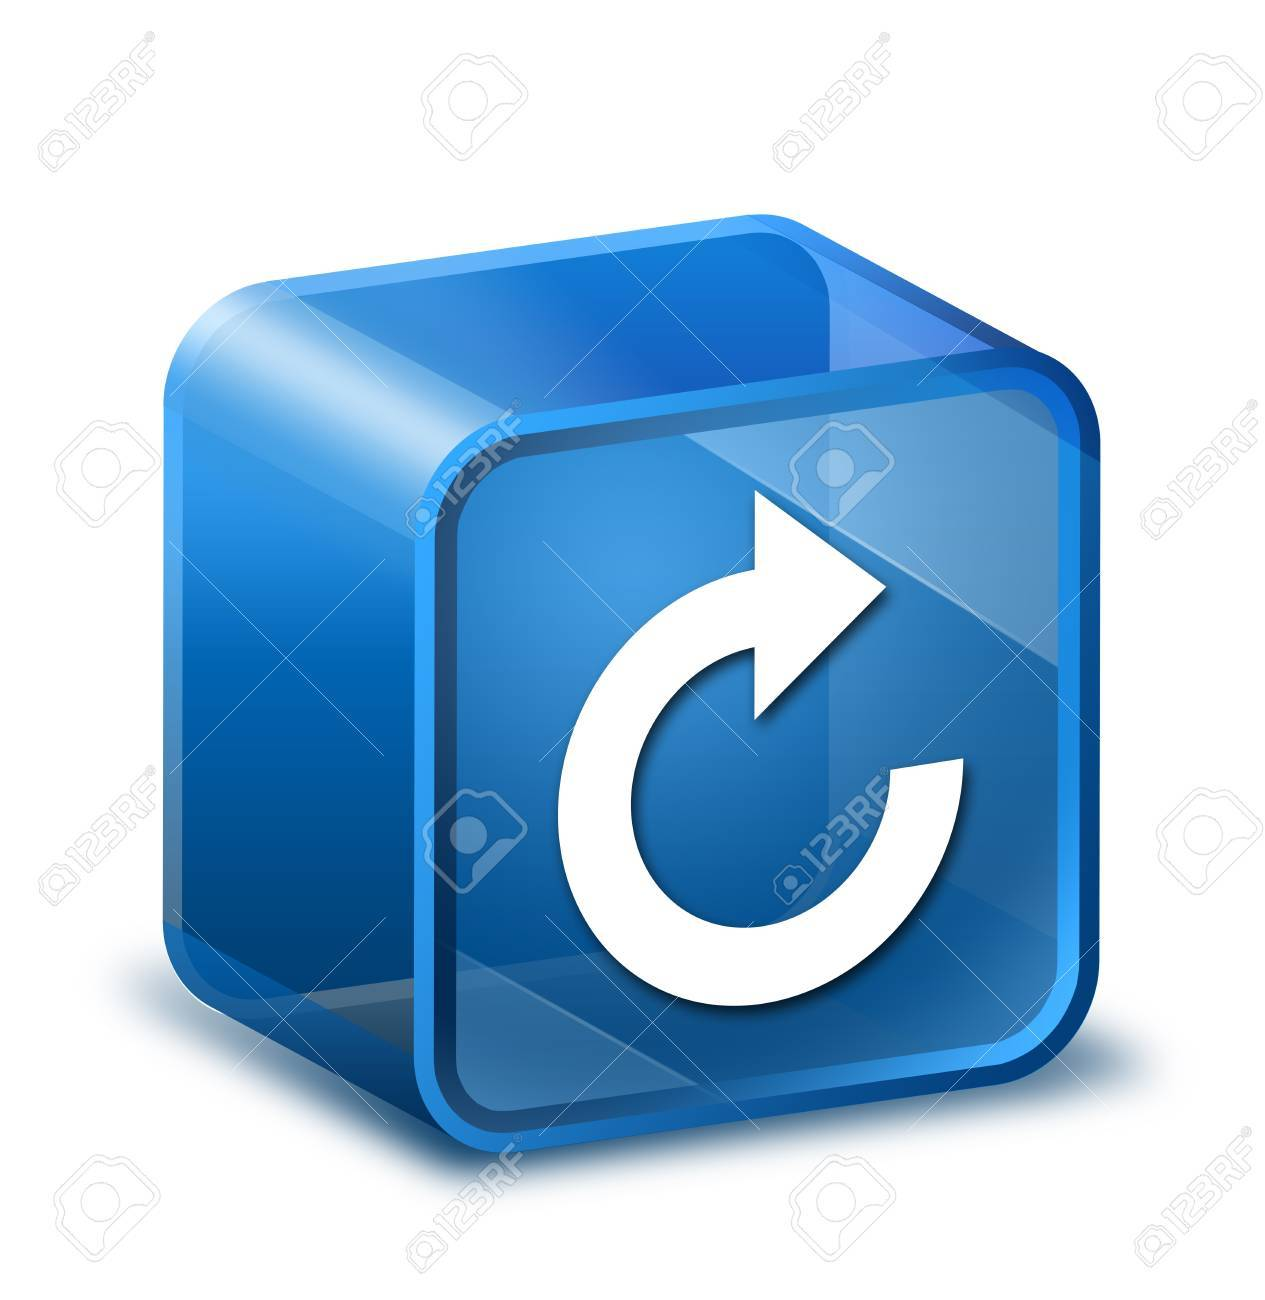 Transparent to the 3d icon Stock Photo - 14603465